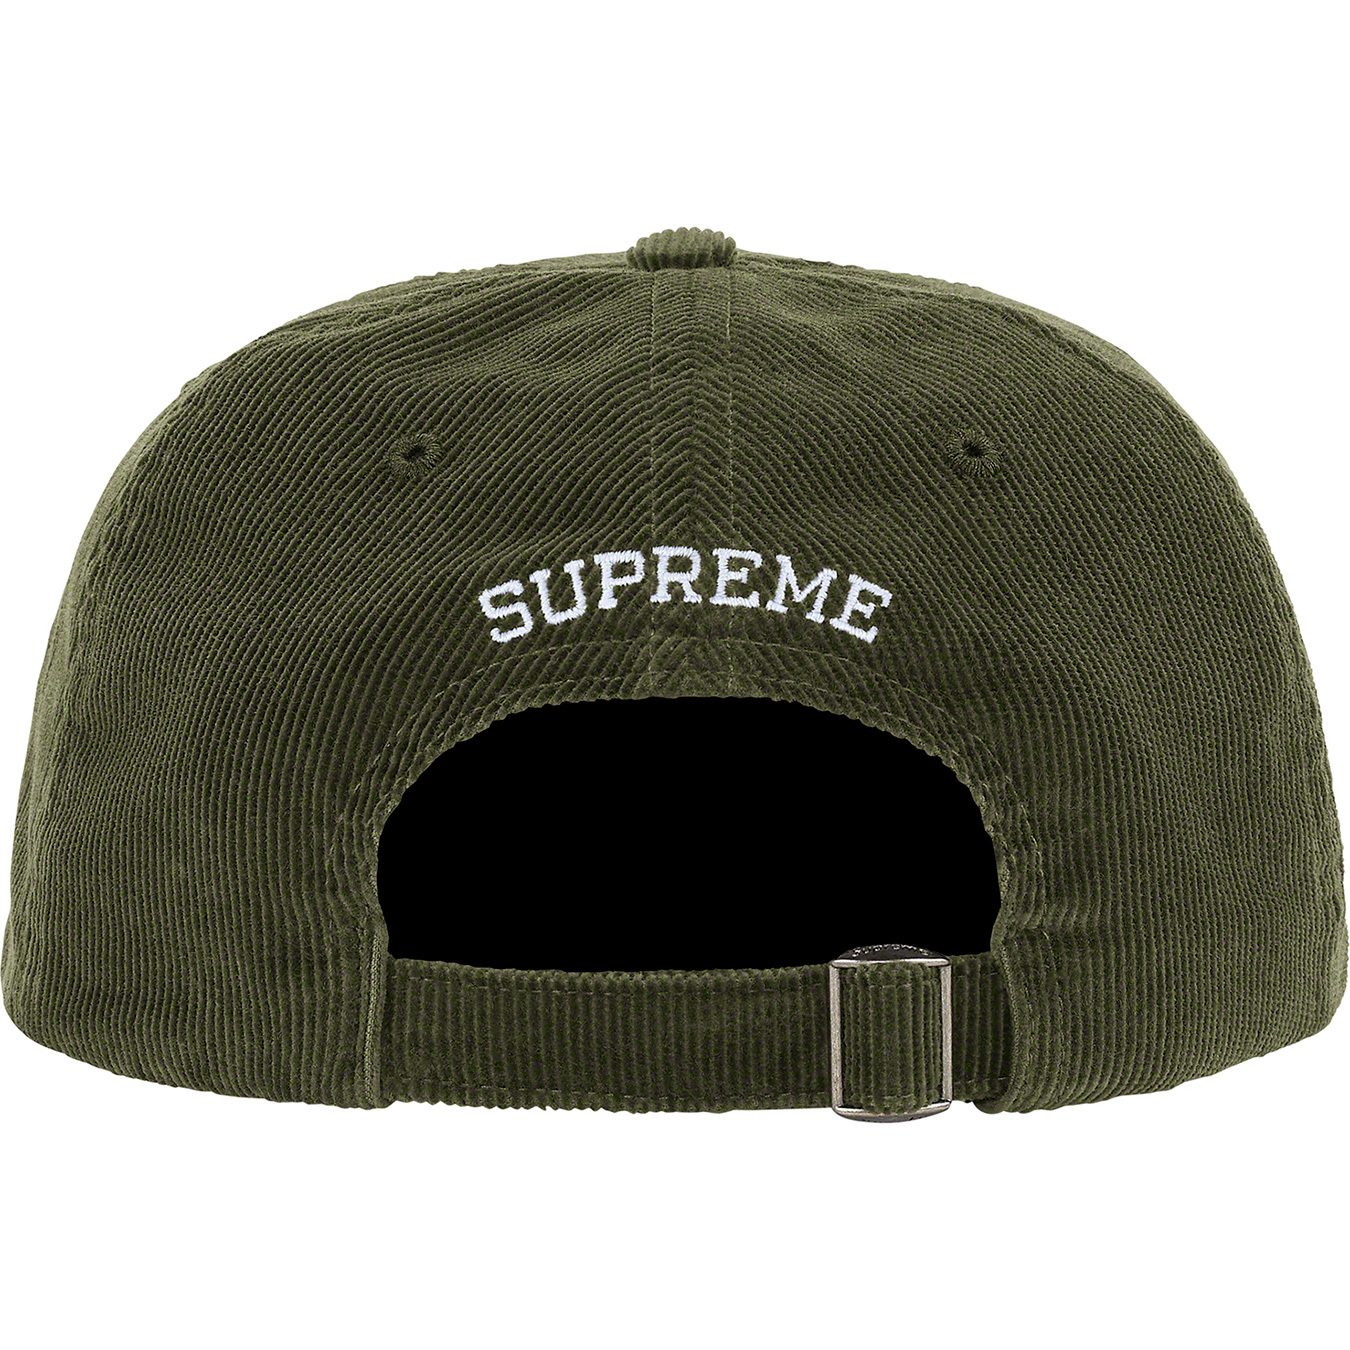 supreme-21ss-spring-summer-fine-wale-corduroy-s-logo-6-panel